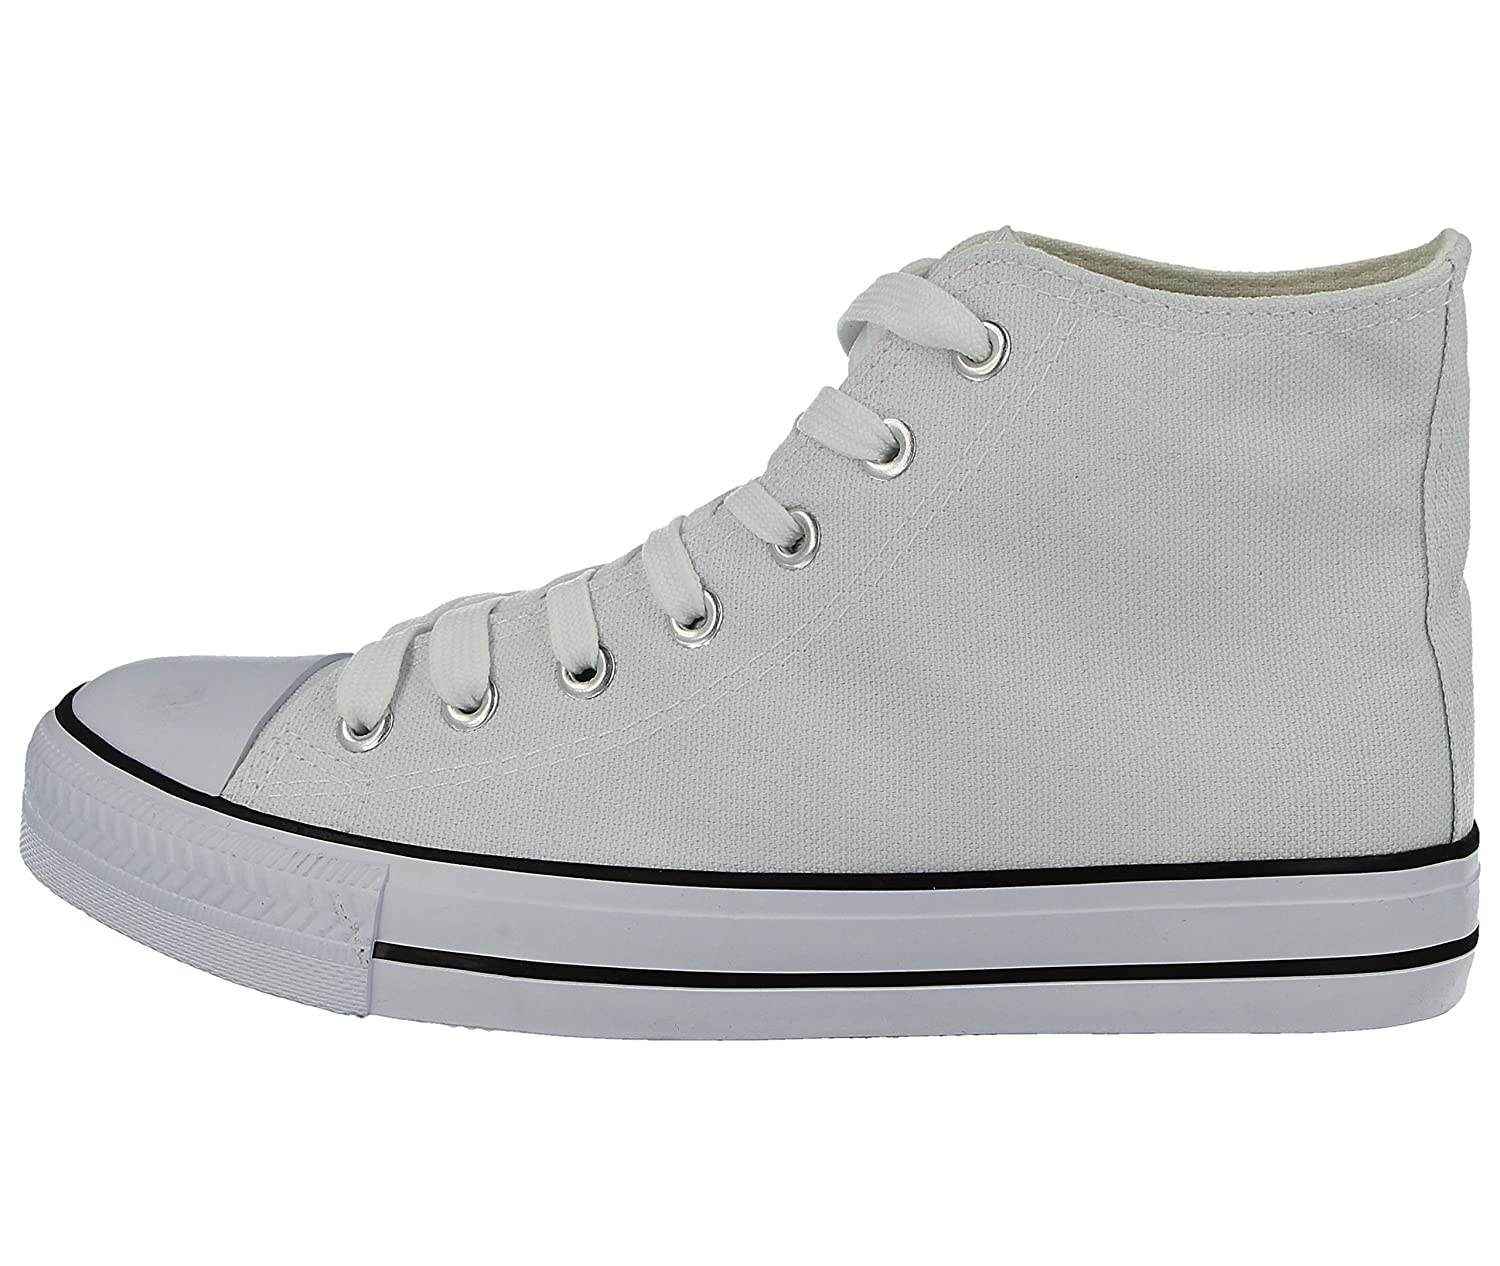 f429b1ba531 Mens Baltimore Academy Low Top Hi Top Canvas Toe Cap Lace Up Pumps Plimsoll  All Star Trainers Casual Shoes Size 6-12  Amazon.co.uk  Shoes   Bags